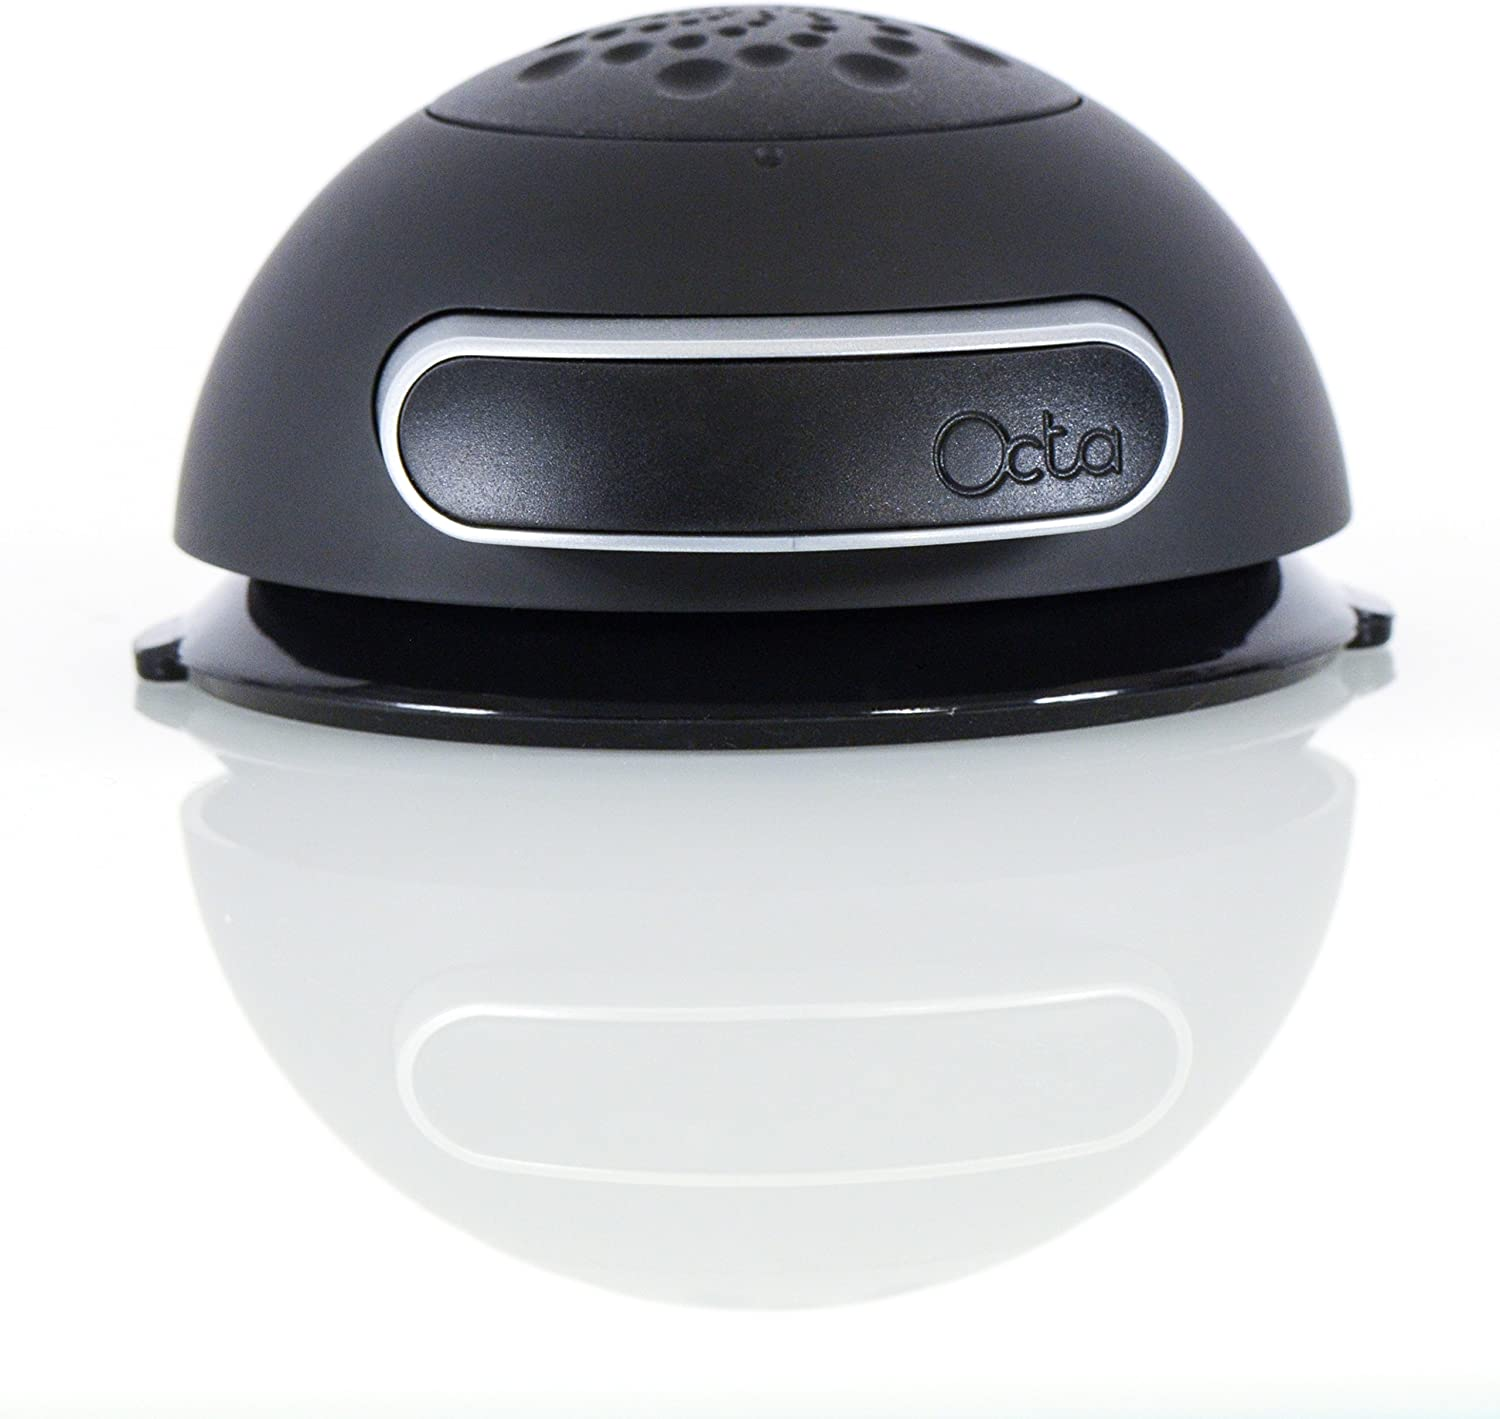 Octa TabletTail Vacuum Dock